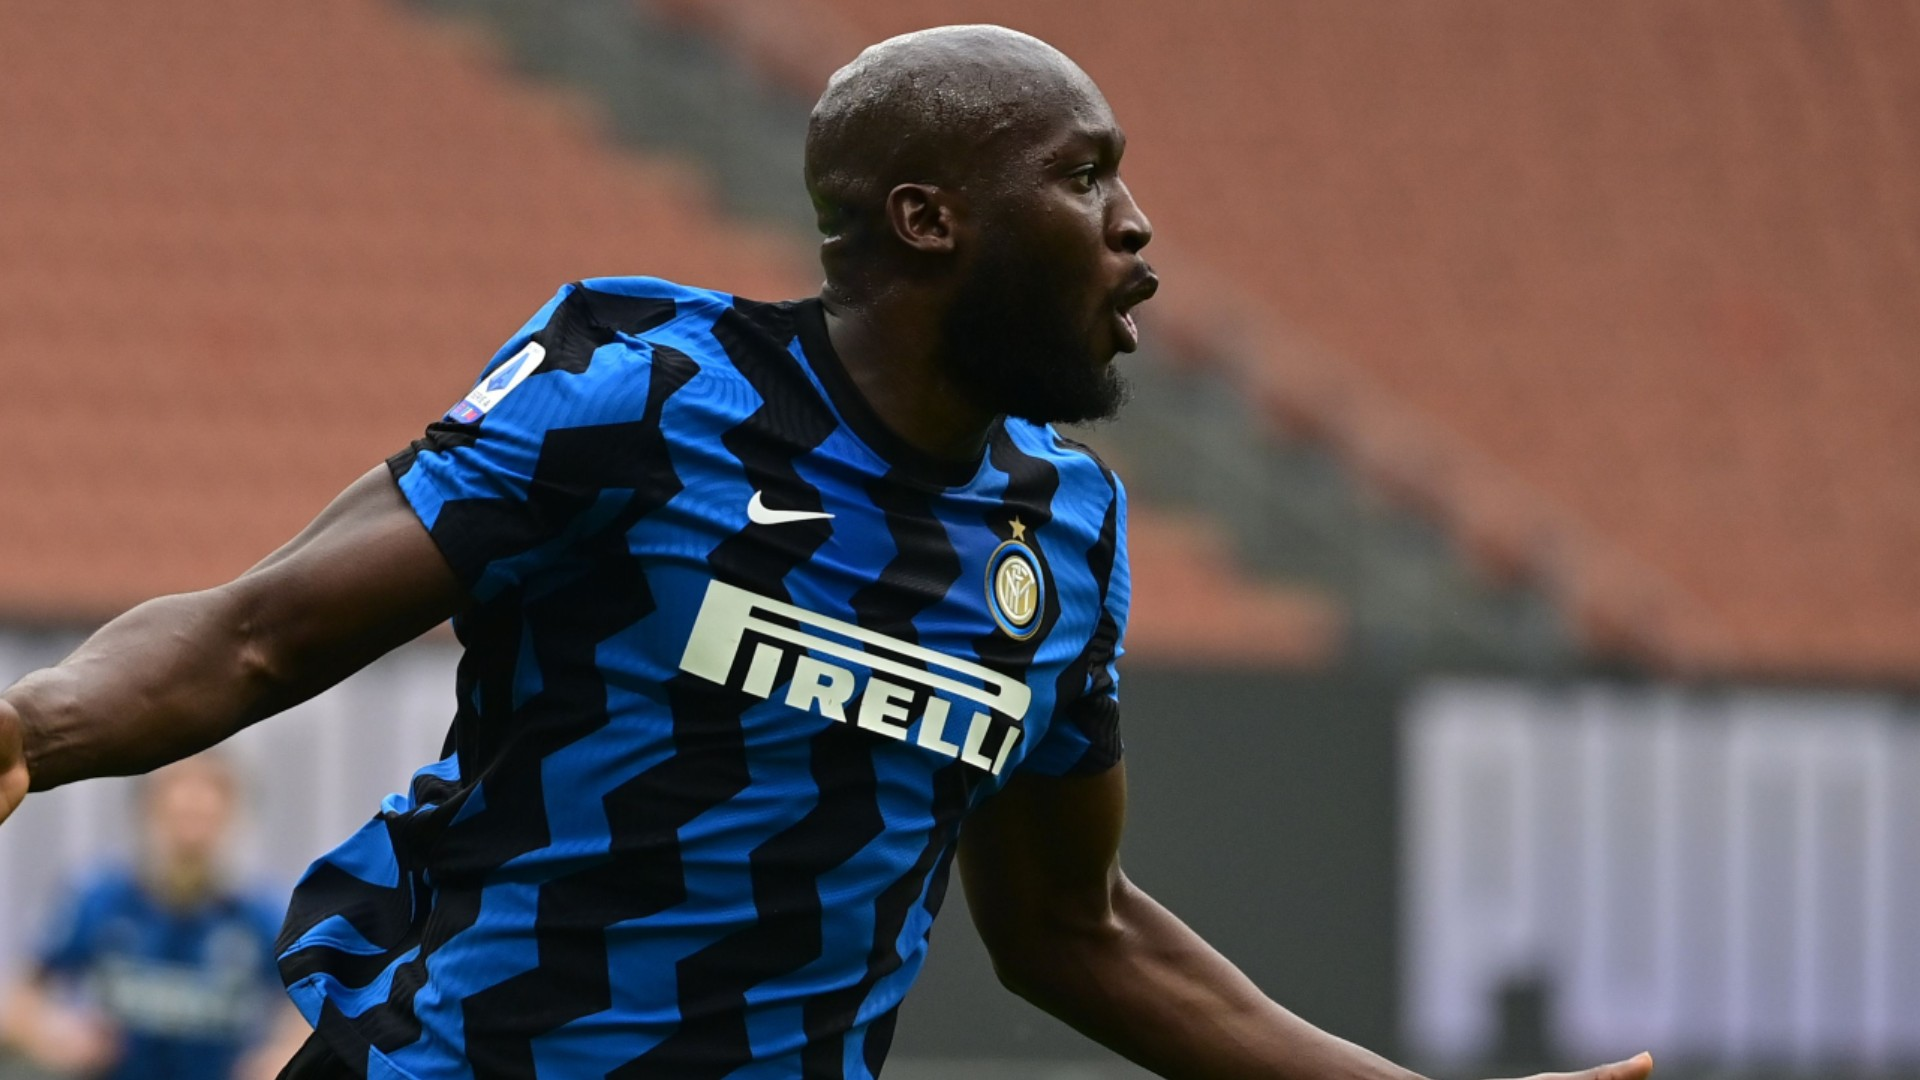 Lukaku is not for sale, Inter CEO Marotta says amid interest from Chelsea and Man City